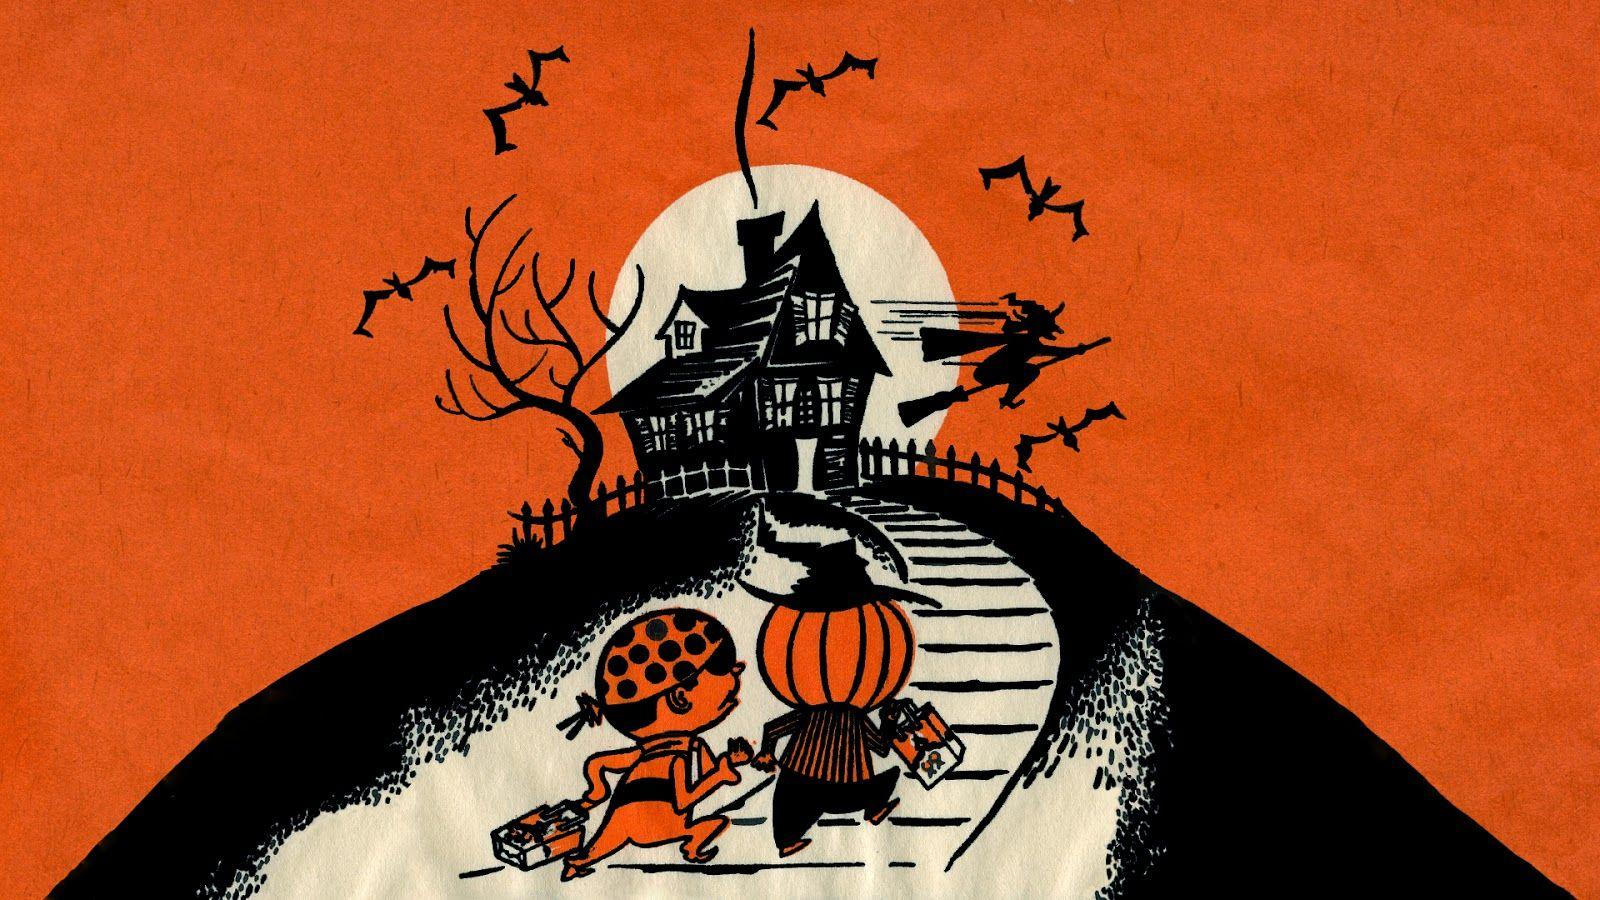 Neato Coolville: HALLOWEEN WALLPAPER: UP THE HILL TRICK OR TREAT